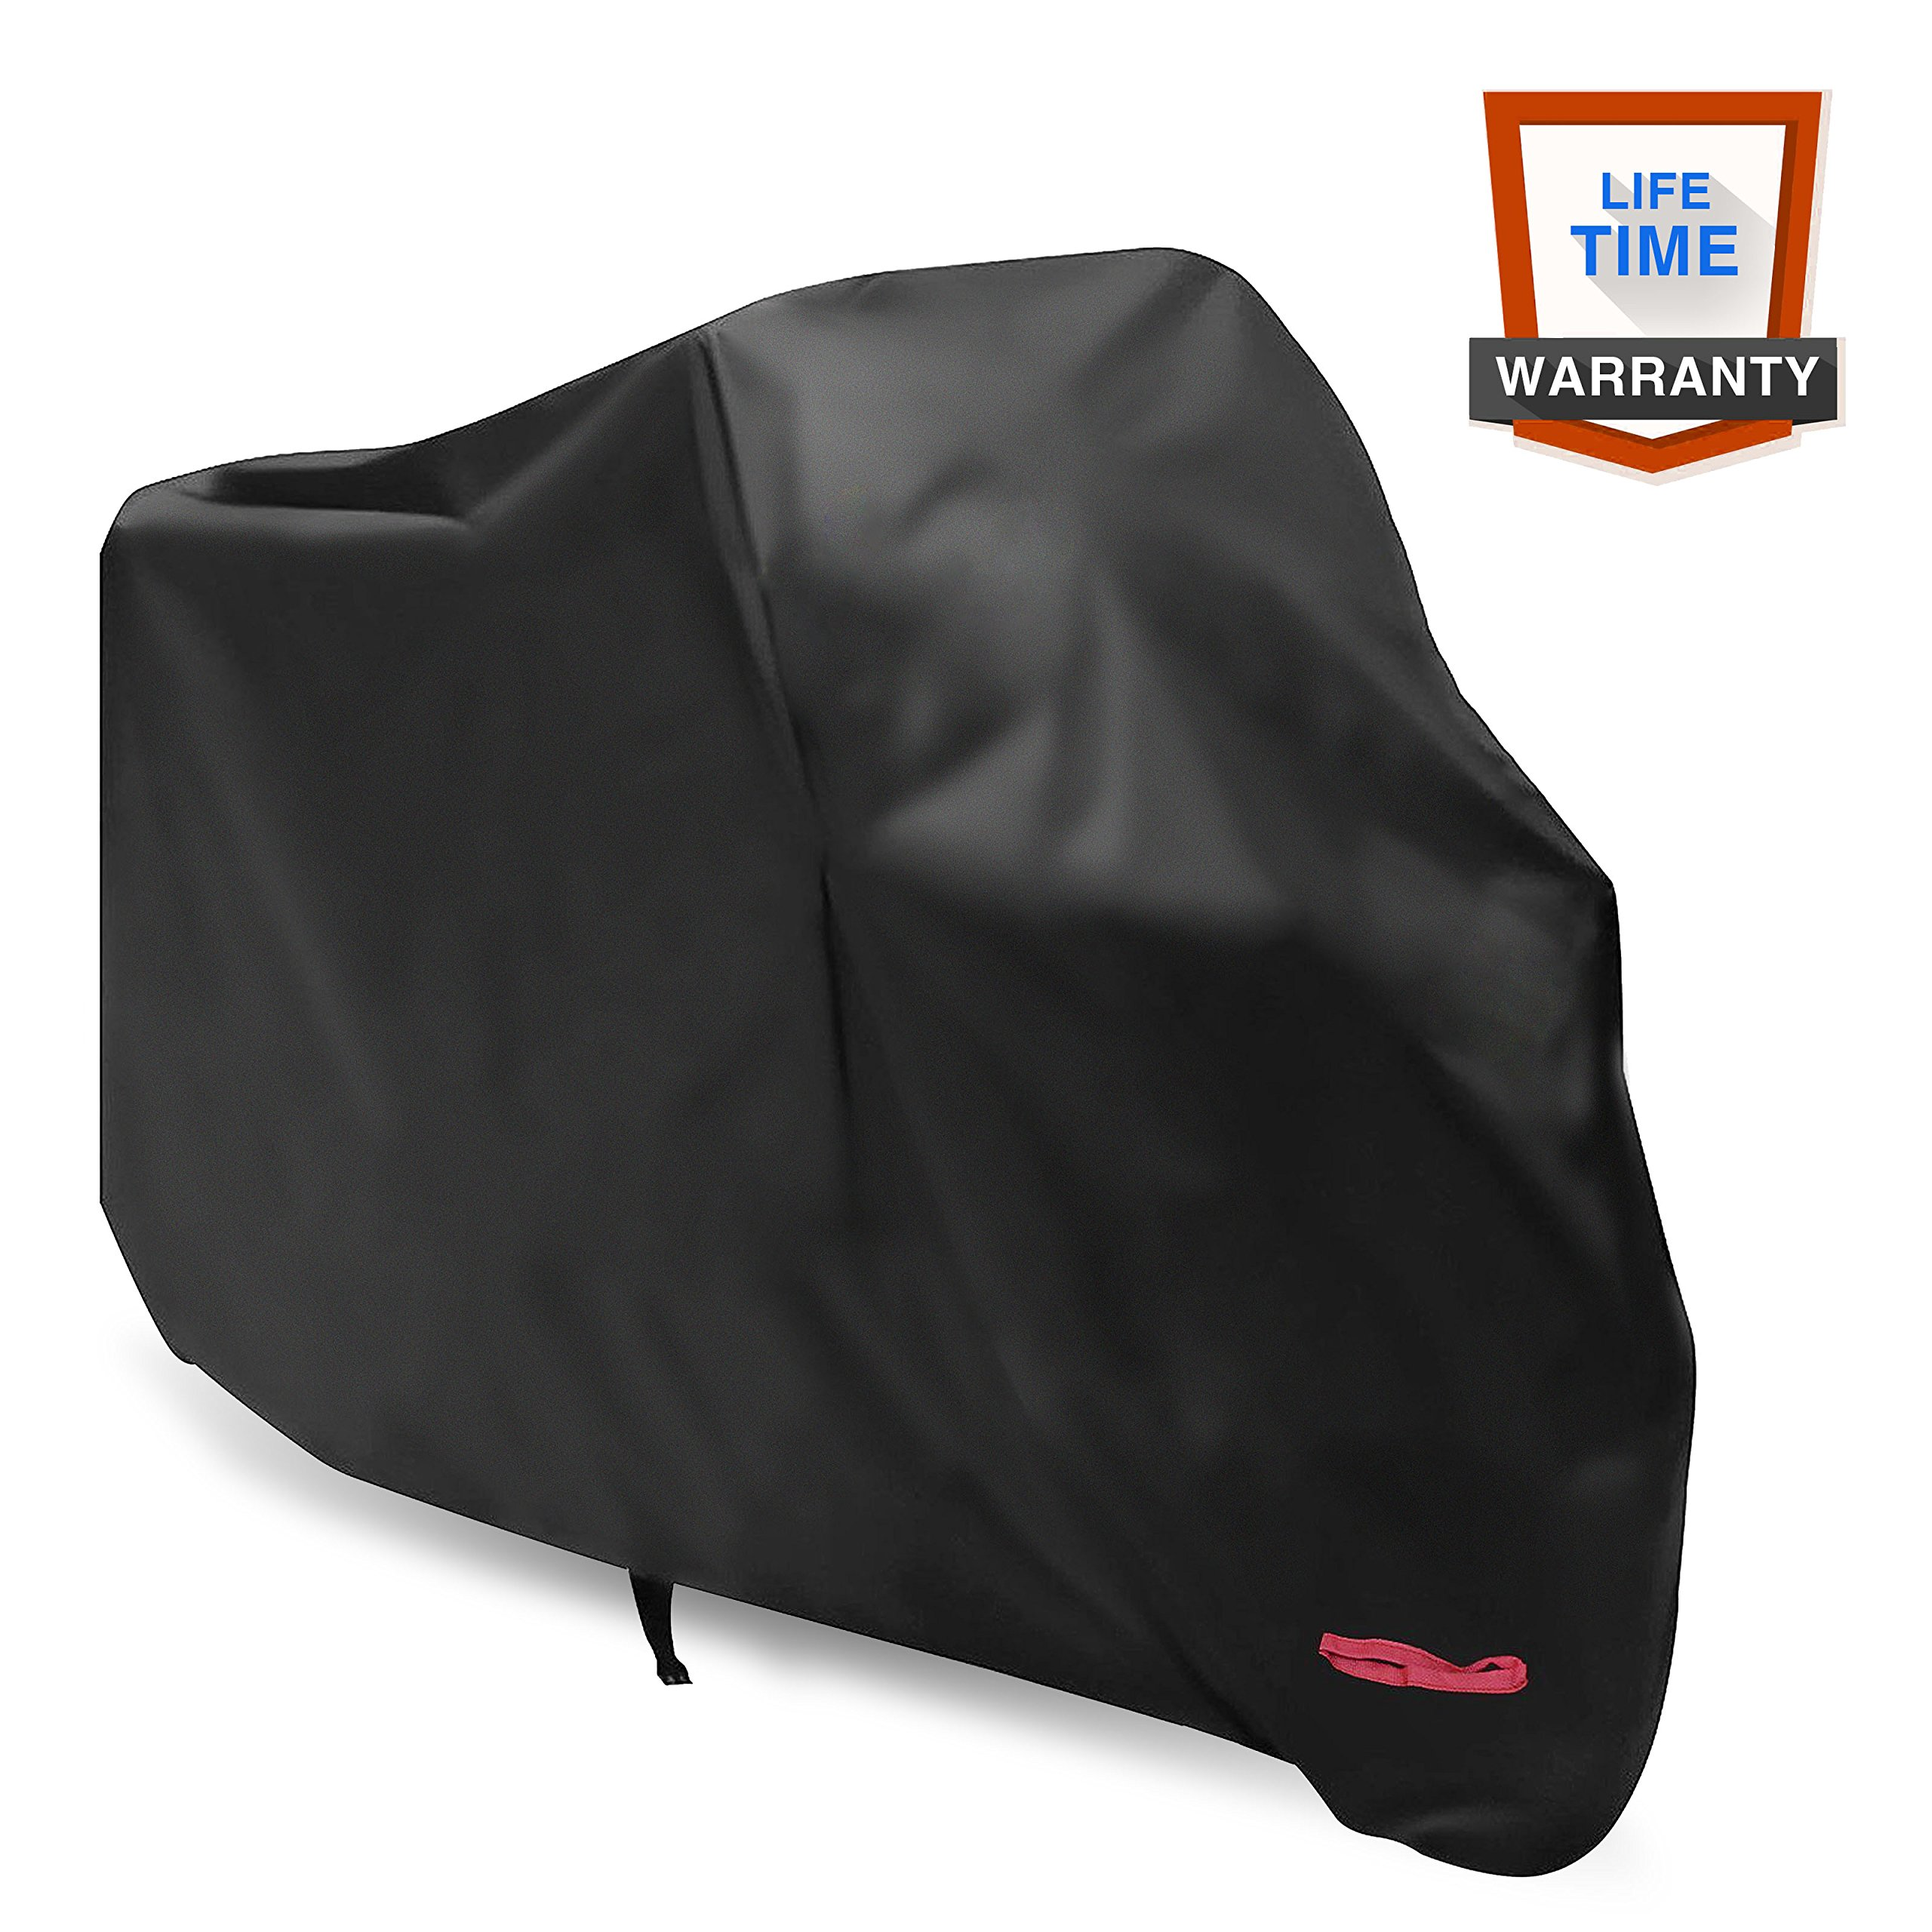 Motorcycle Cover,WDLHQC Waterproof Motorcycle Cover All Weather Outdoor Protection,Oxford Durable and Tear Proof,Precision Fit for 108 Inch Motors Like Honda,Yamaha,Suzuki,Harley and More-XXL,Black by WDLHQC (Image #1)